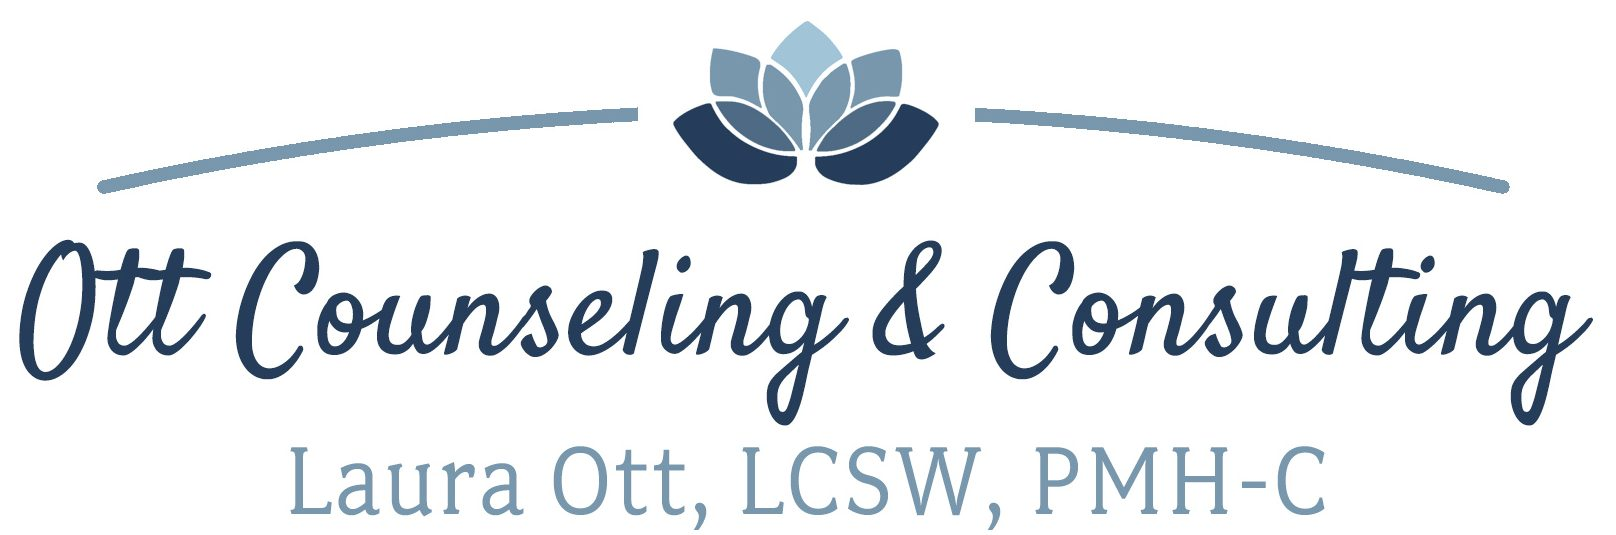 Ott Counseling & Consulting